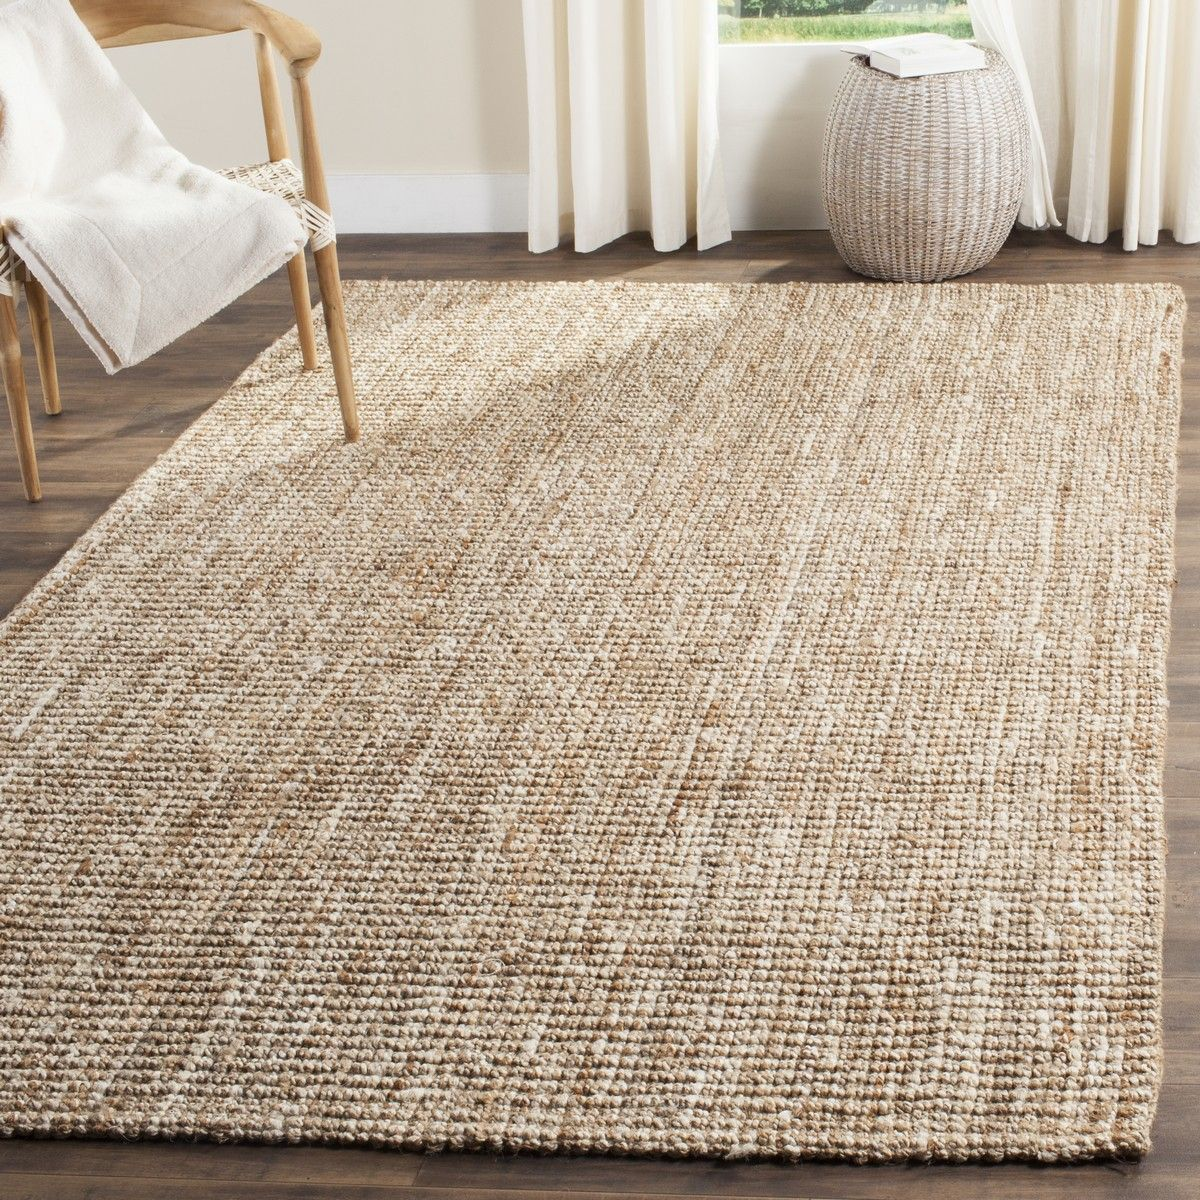 Rug Nf447n Natural Fiber Area Rugs By Safavieh Natural Jute Rug Braided Area Rugs Area Rugs Natural fiber rugs that are soft